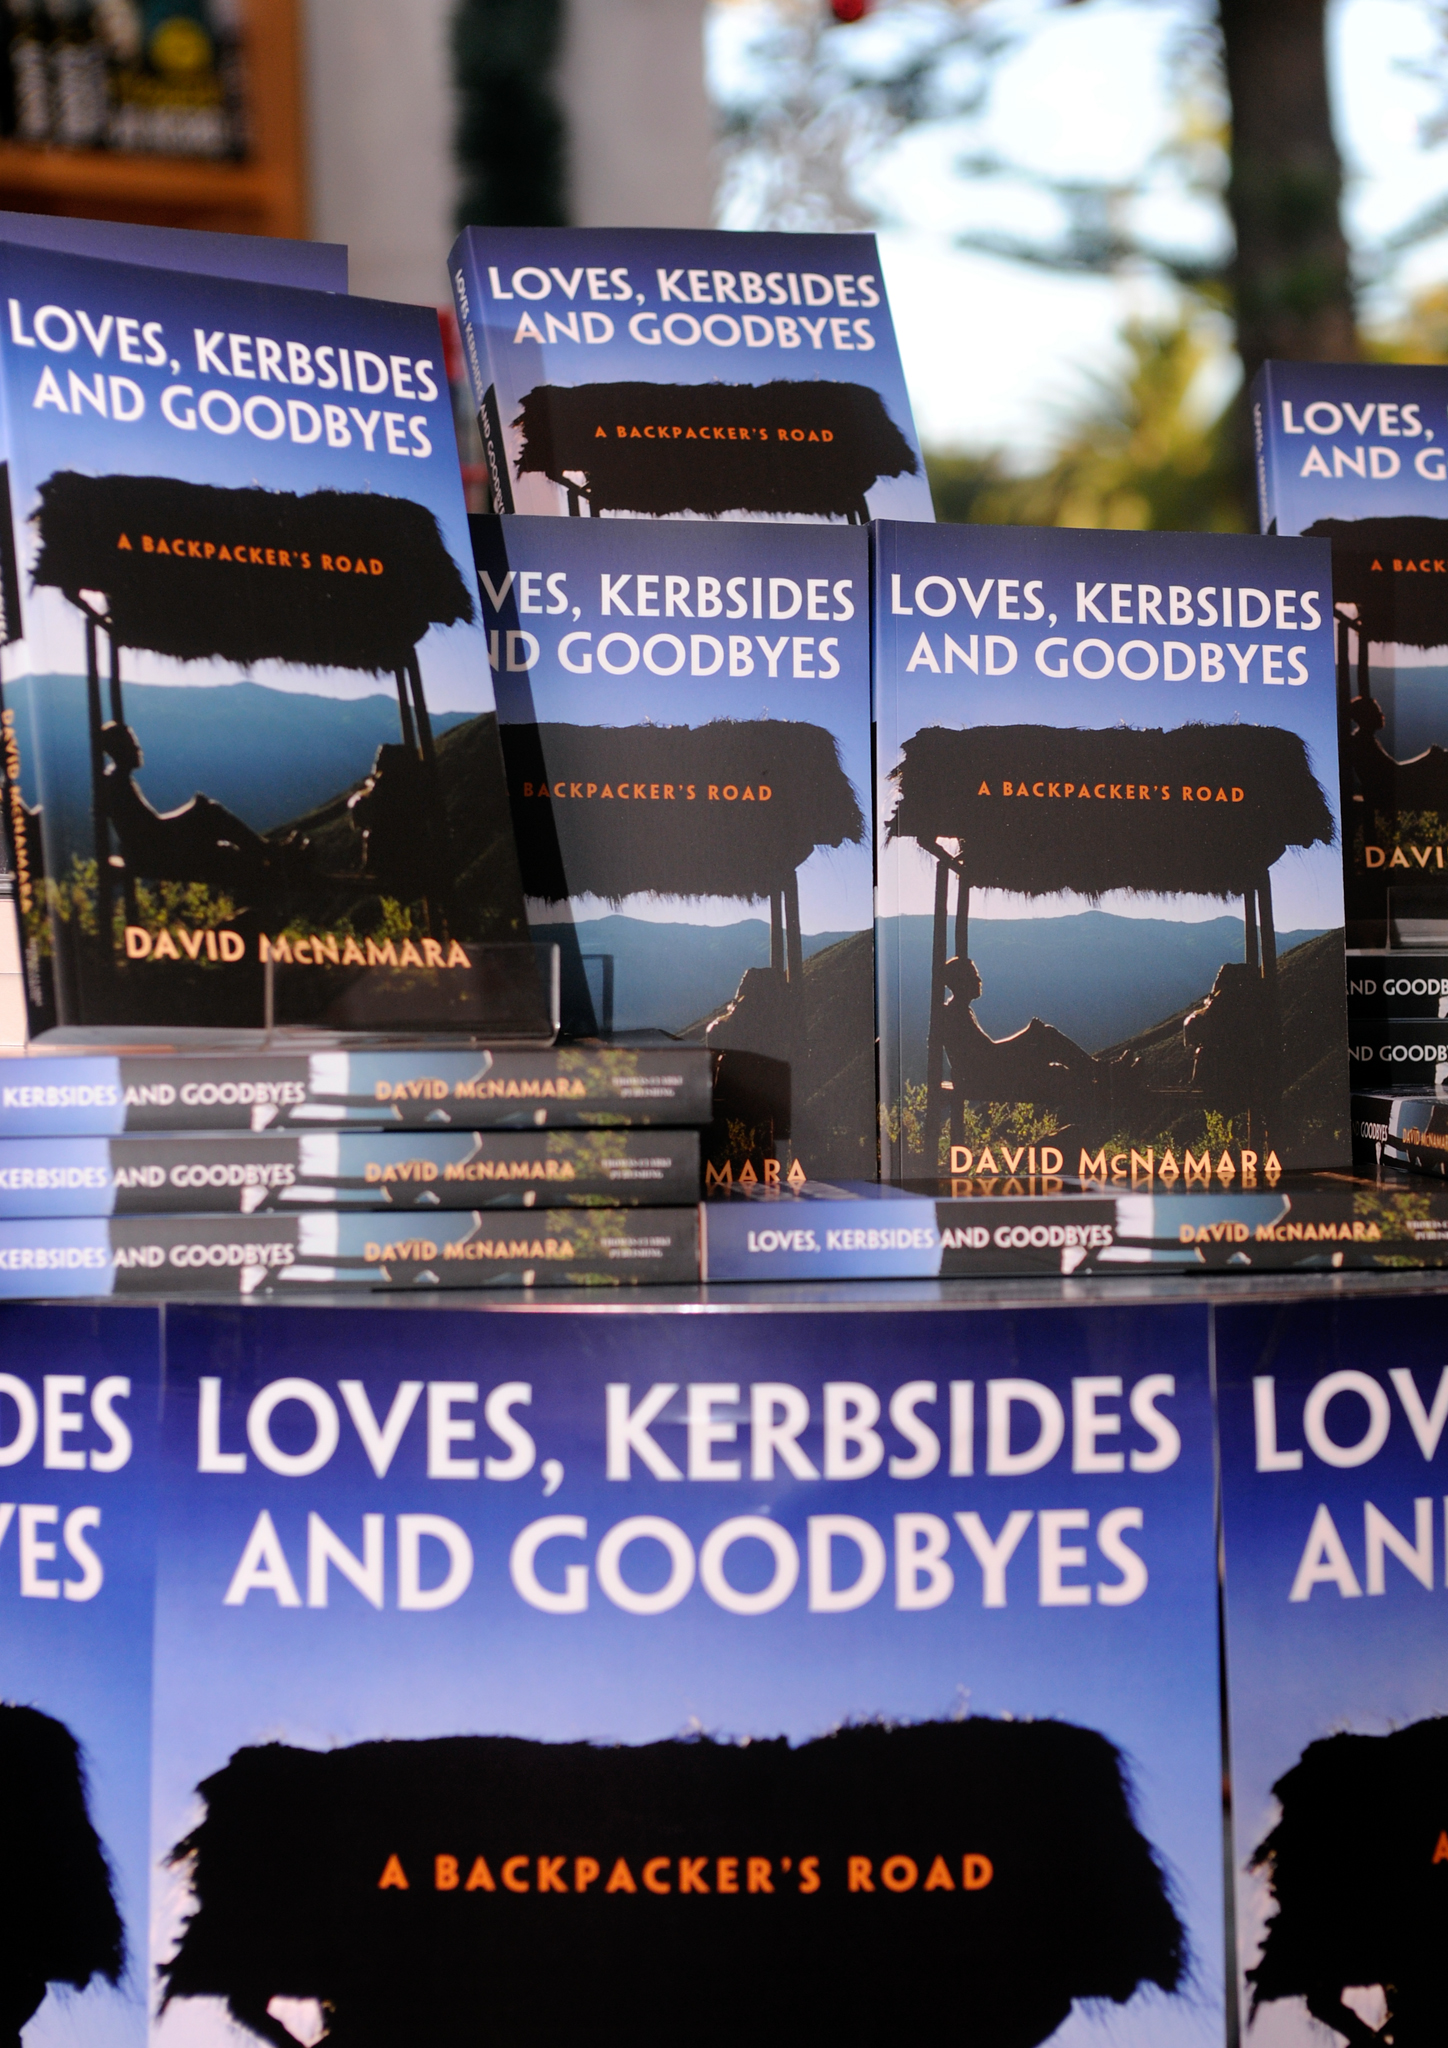 """Loves, Kerbsides & Goodbyes"" ondisplay at the Book Launch"